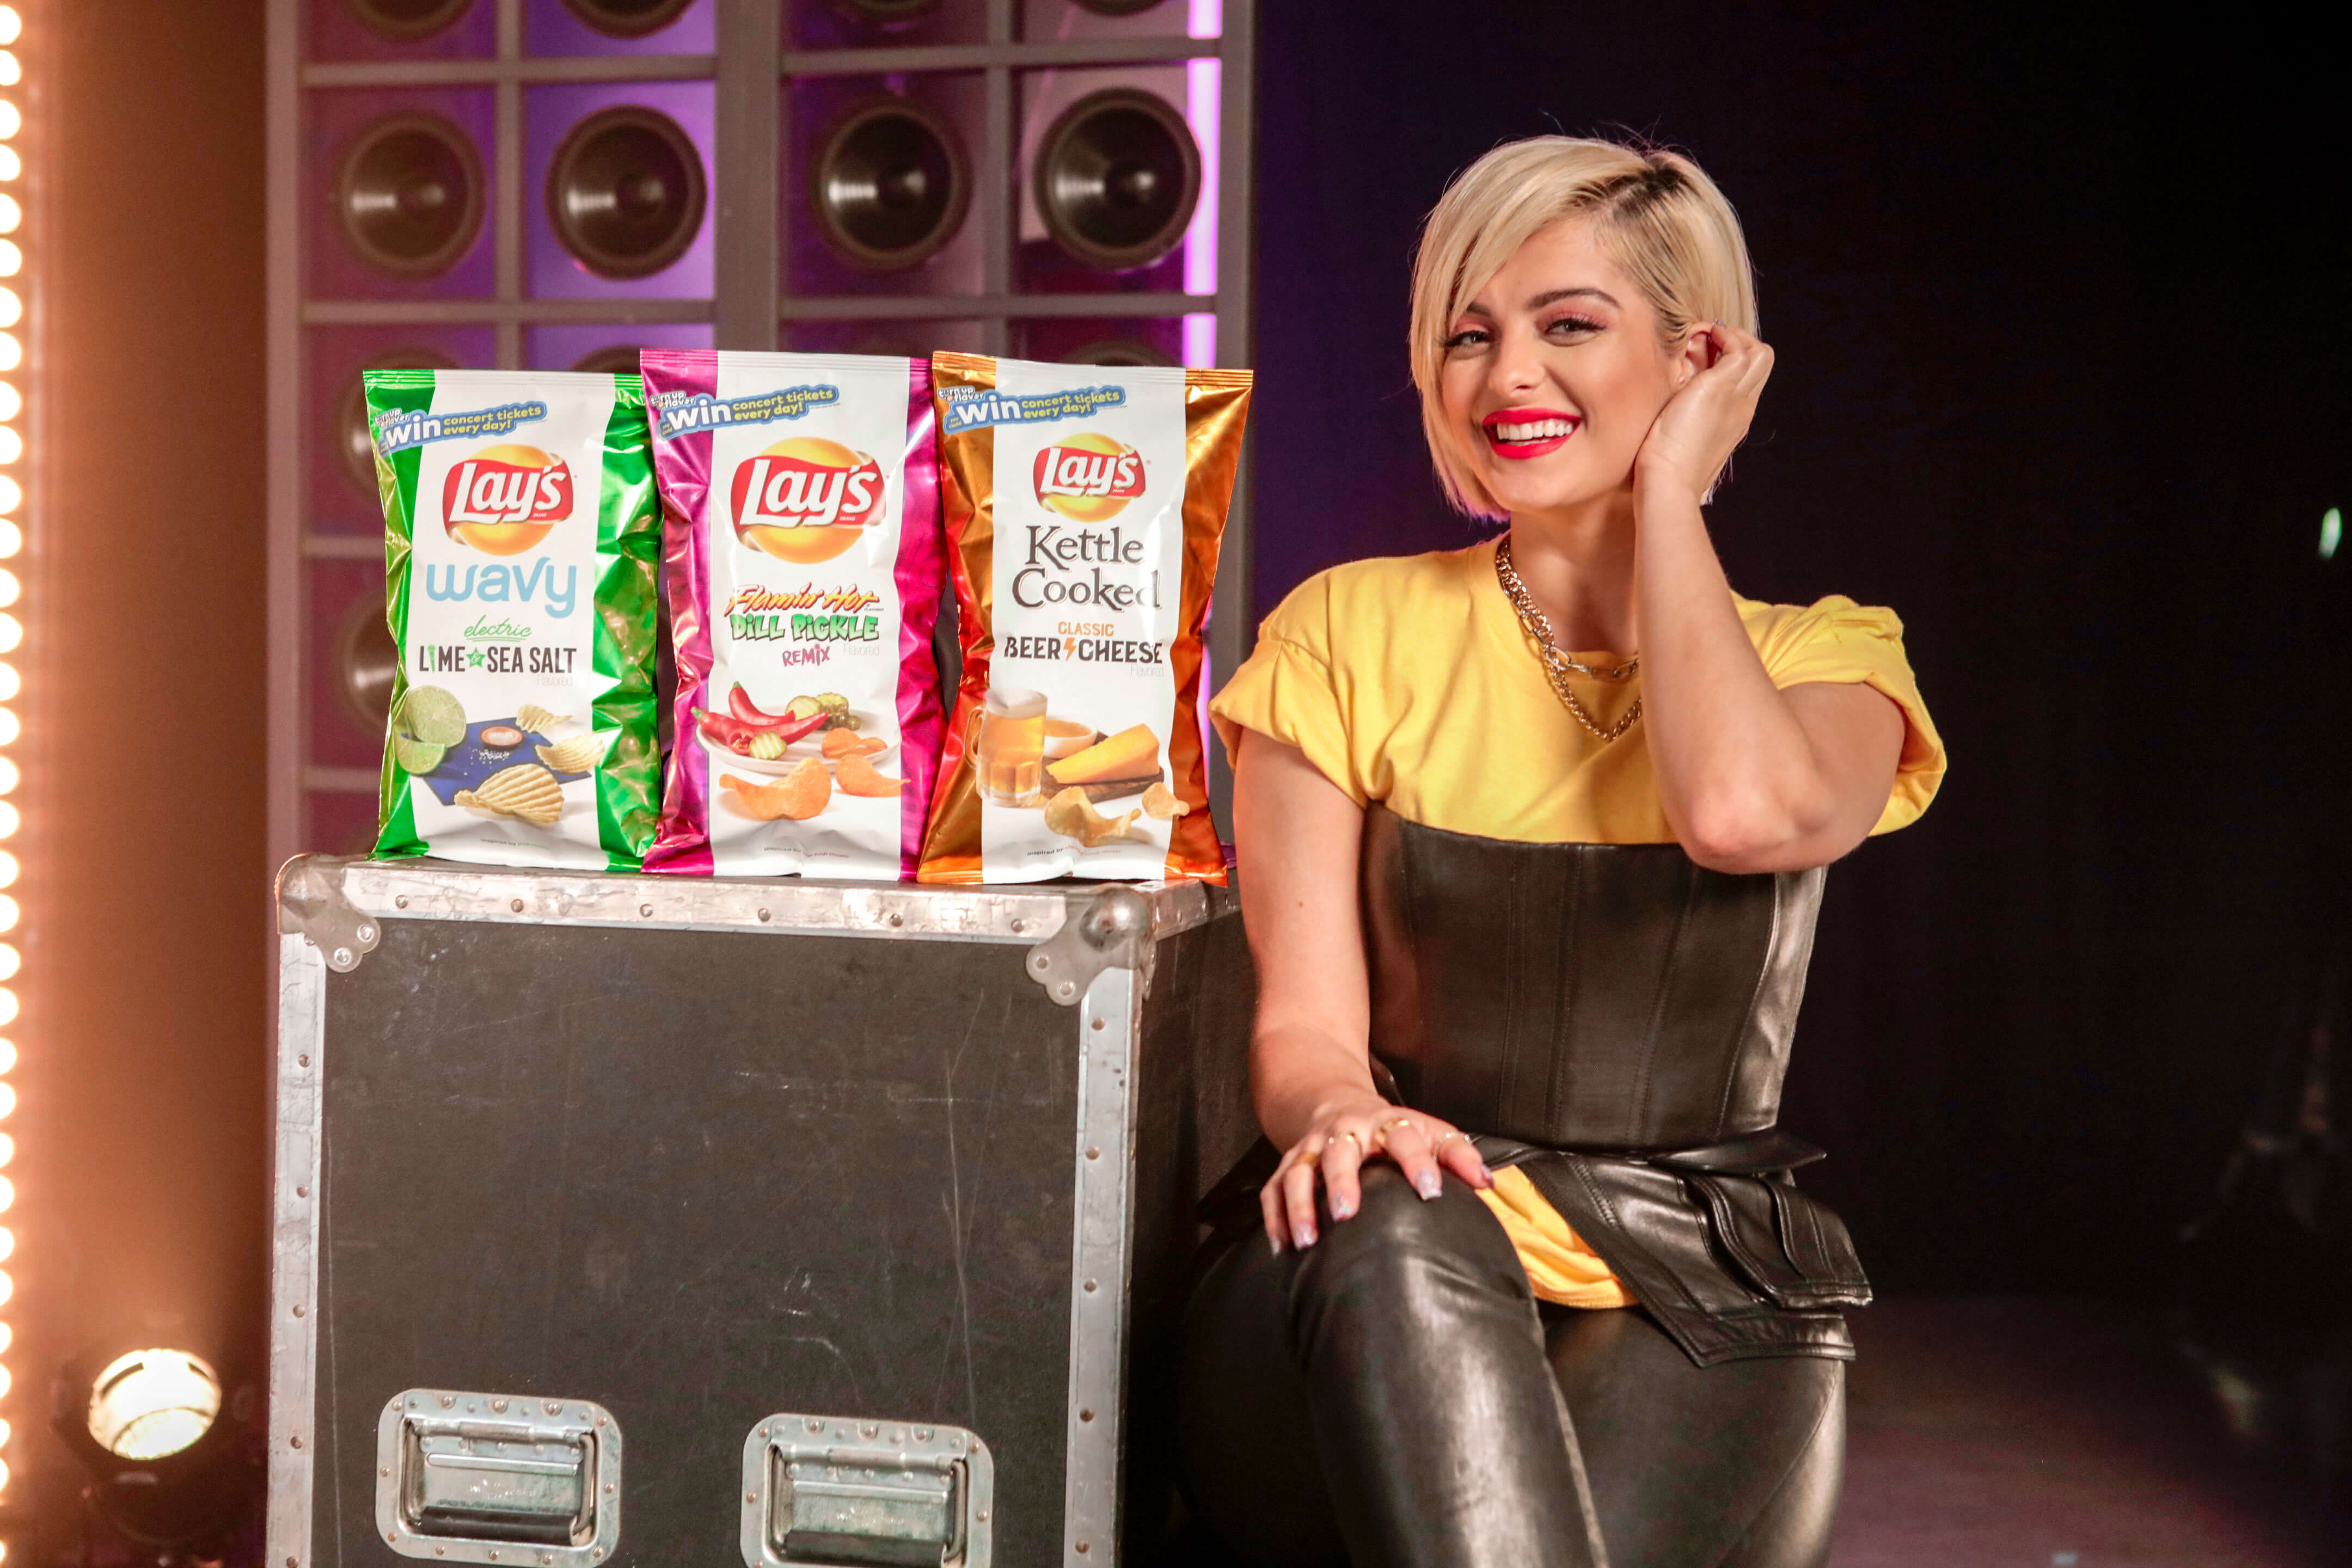 """Leveraging The Marketing Arm's connections as a talent agency, we partnered with Bebe Rexha to create an original song, """"Right Here, Right Now,"""" remixed in four musical genres made to pair with the new Lay's flavors."""